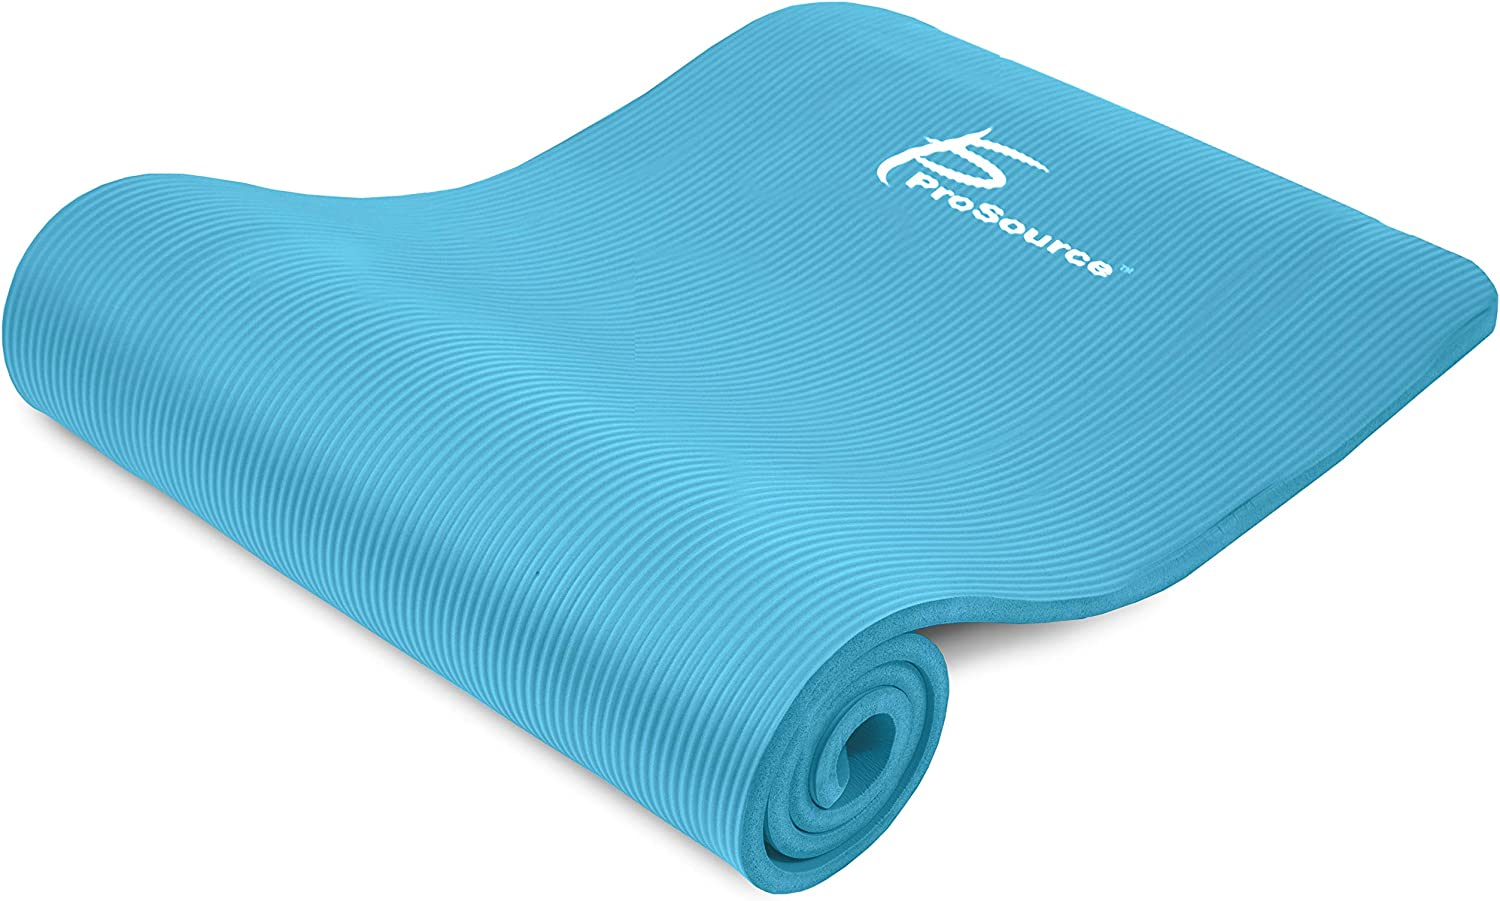 Prosource-Premium-Extra-Thick-71-Inch-Long-High-Density-Exercise-Yoga-Mat